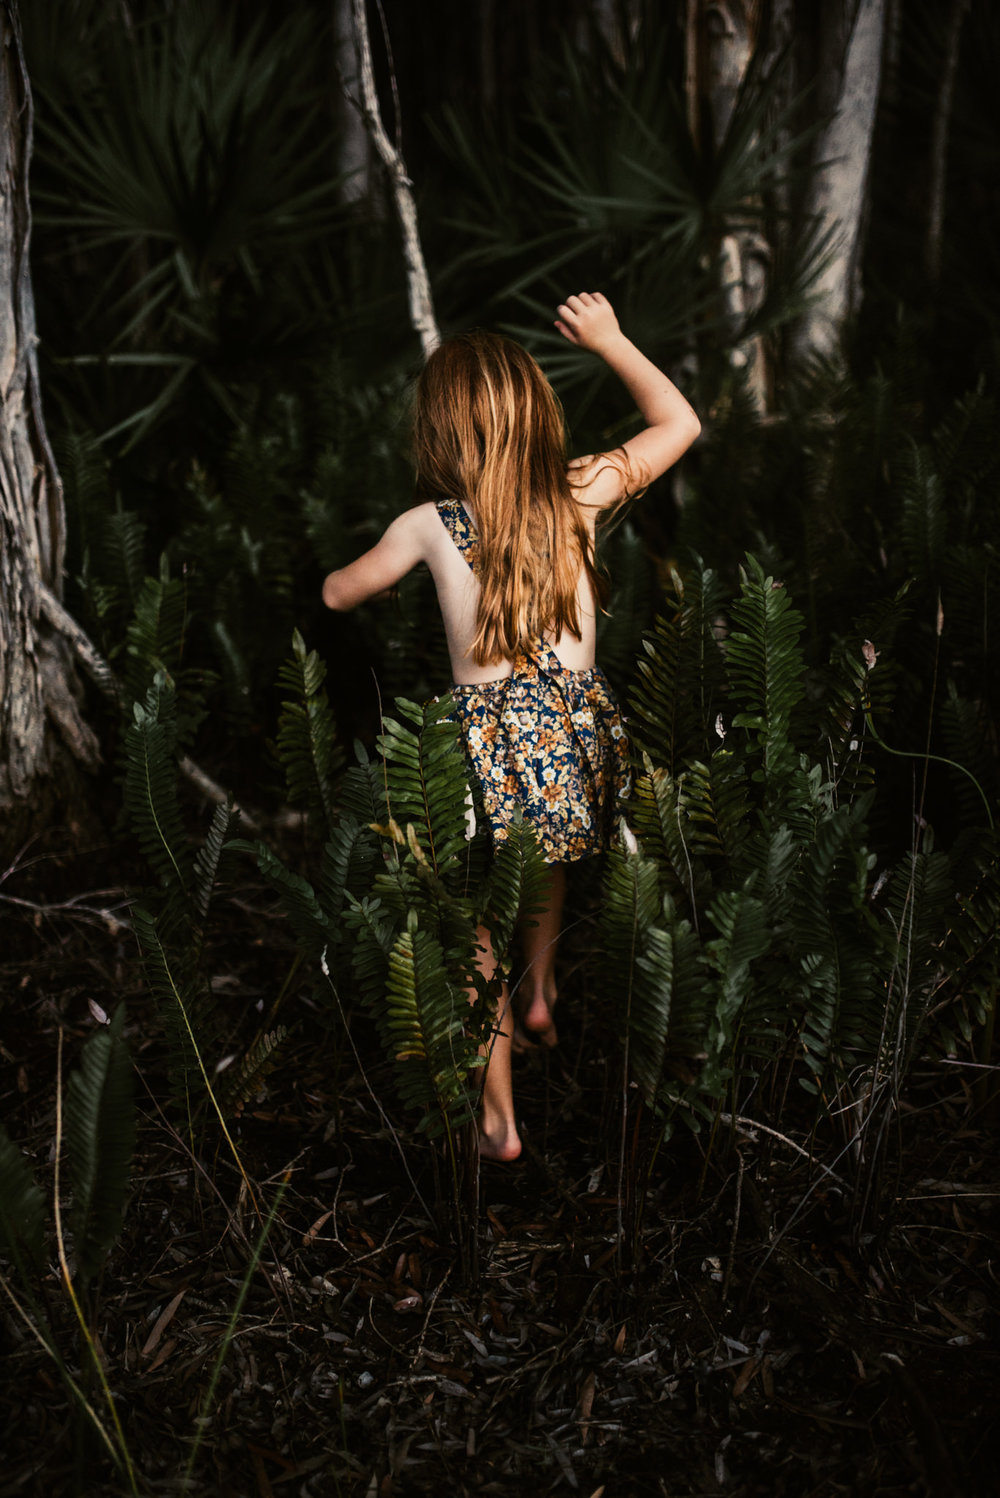 twyla jones photography - treasure coast florida - childrens adventure clothing commercial shoot--58.jpg